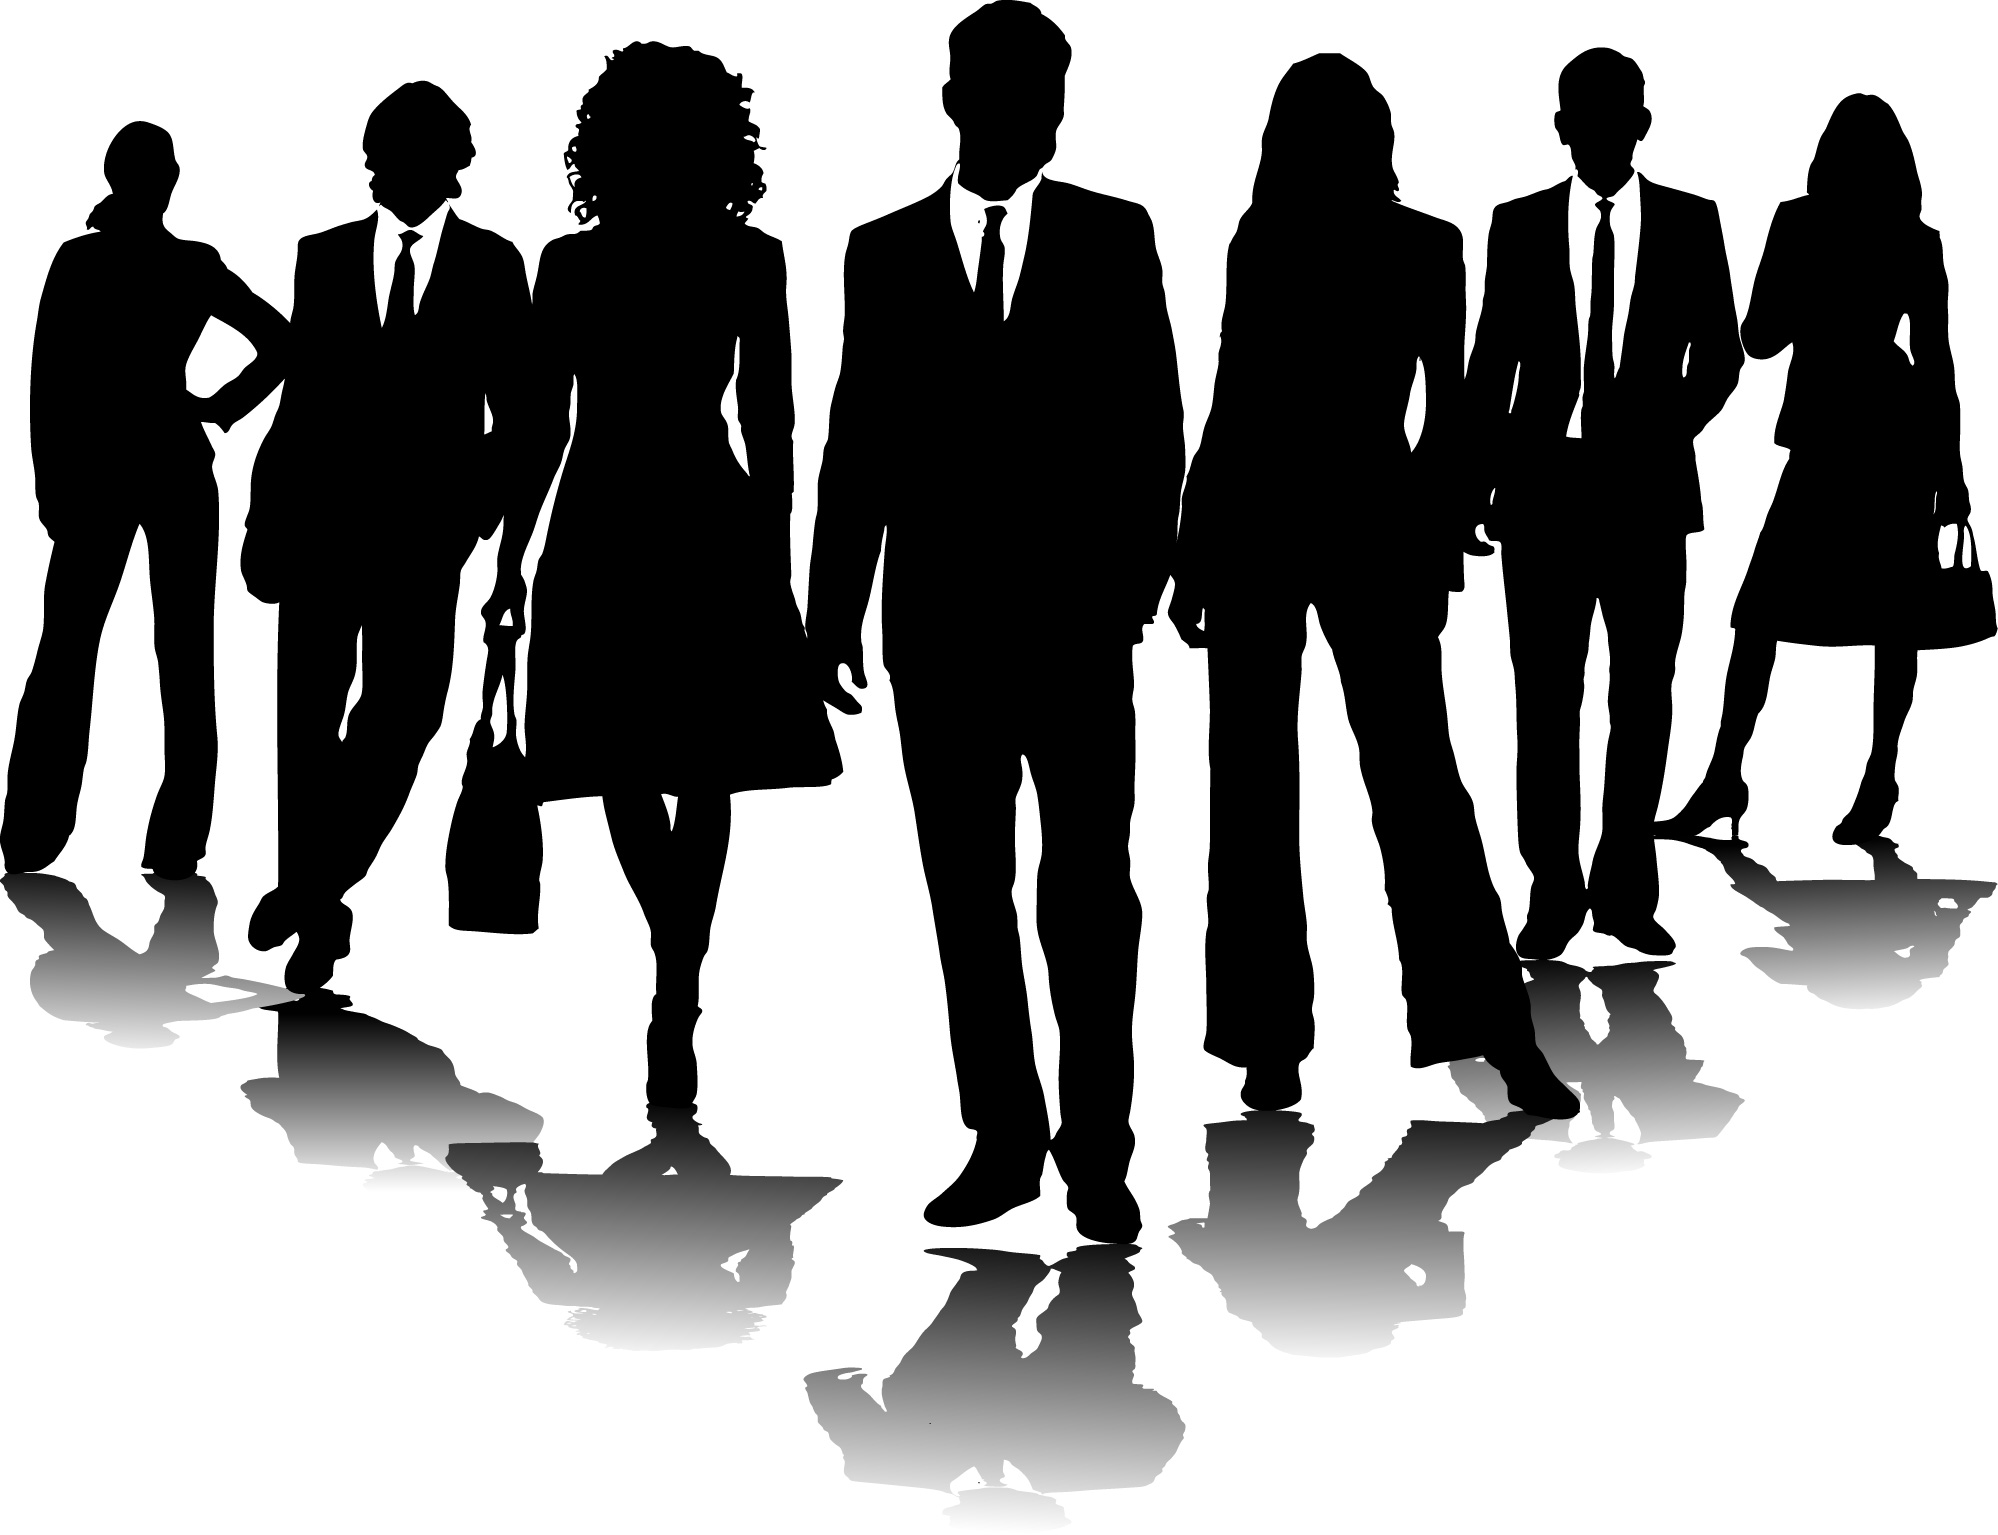 Business people clipart free clipart images 2.